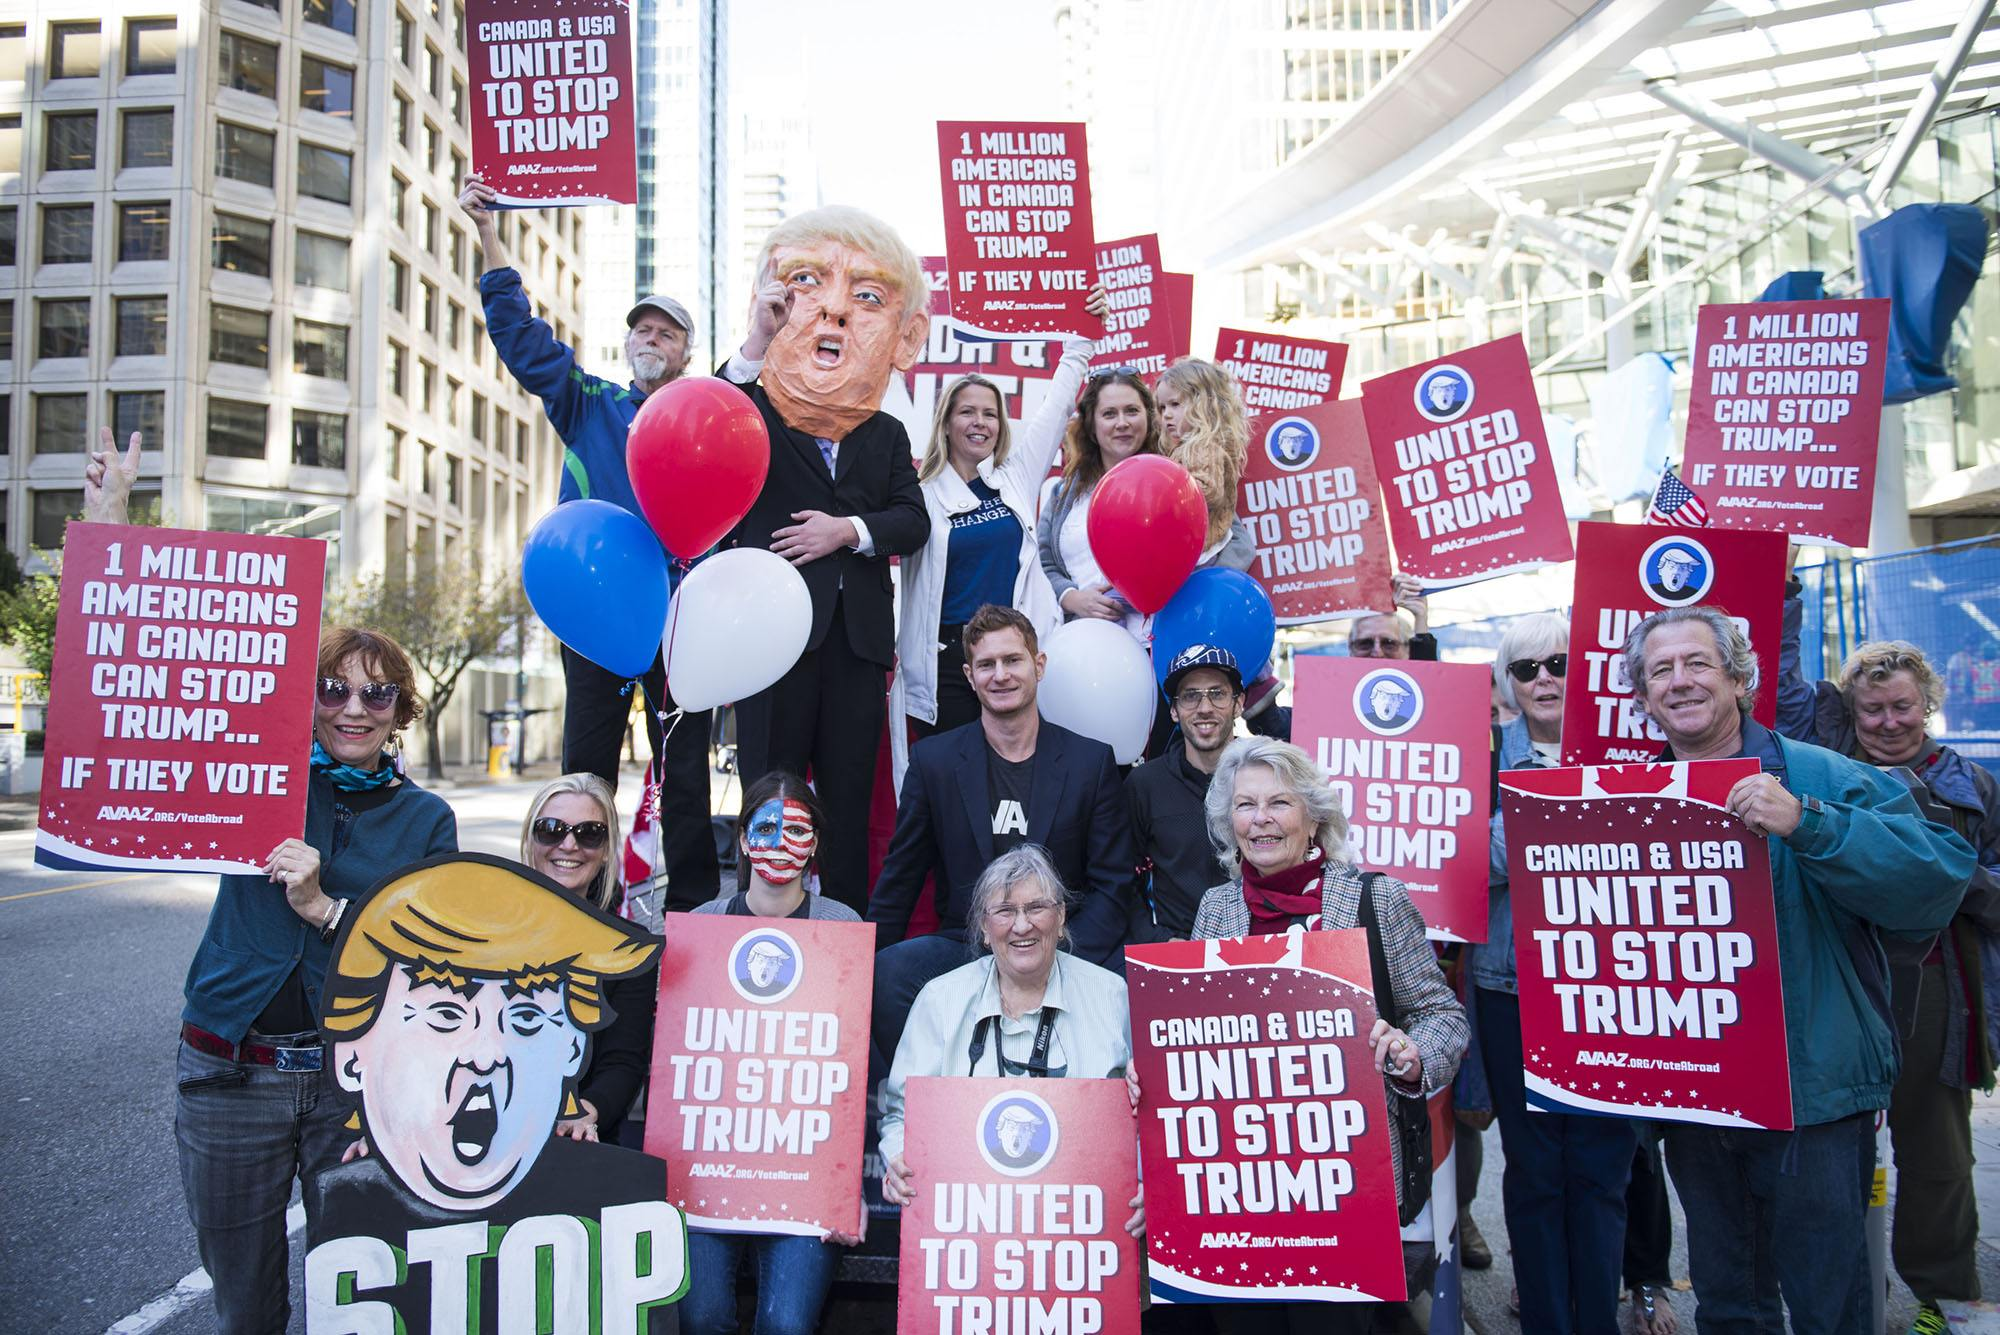 """A flat bed """"Stop Trump"""" truck sits outside the new Trump Tower in downtown Vancouver organized by Avaaz to launch a major new campaign to mobilise American expats across Canada to register and vote, in Vancouver, B.C. on Wednesday, October 5, 2016. (THE CANADIAN PRESS IMAGES/Jimmy Jeong)"""